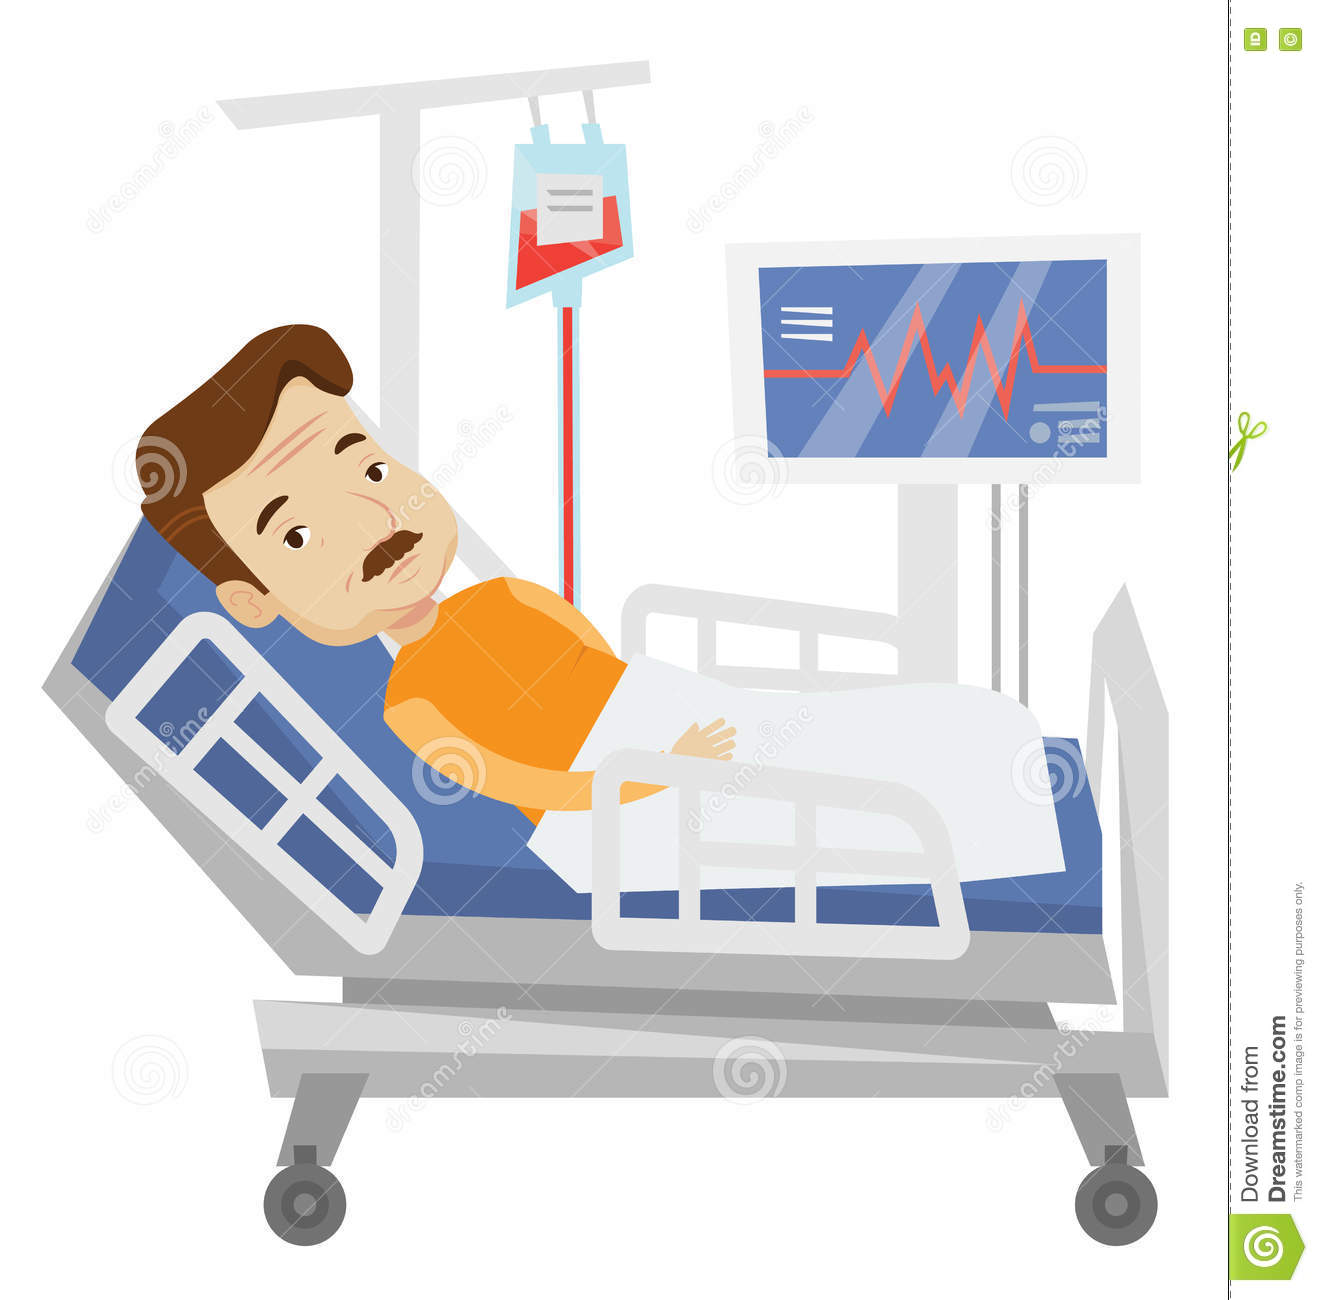 hospital bed illustration royaltyfree illustration